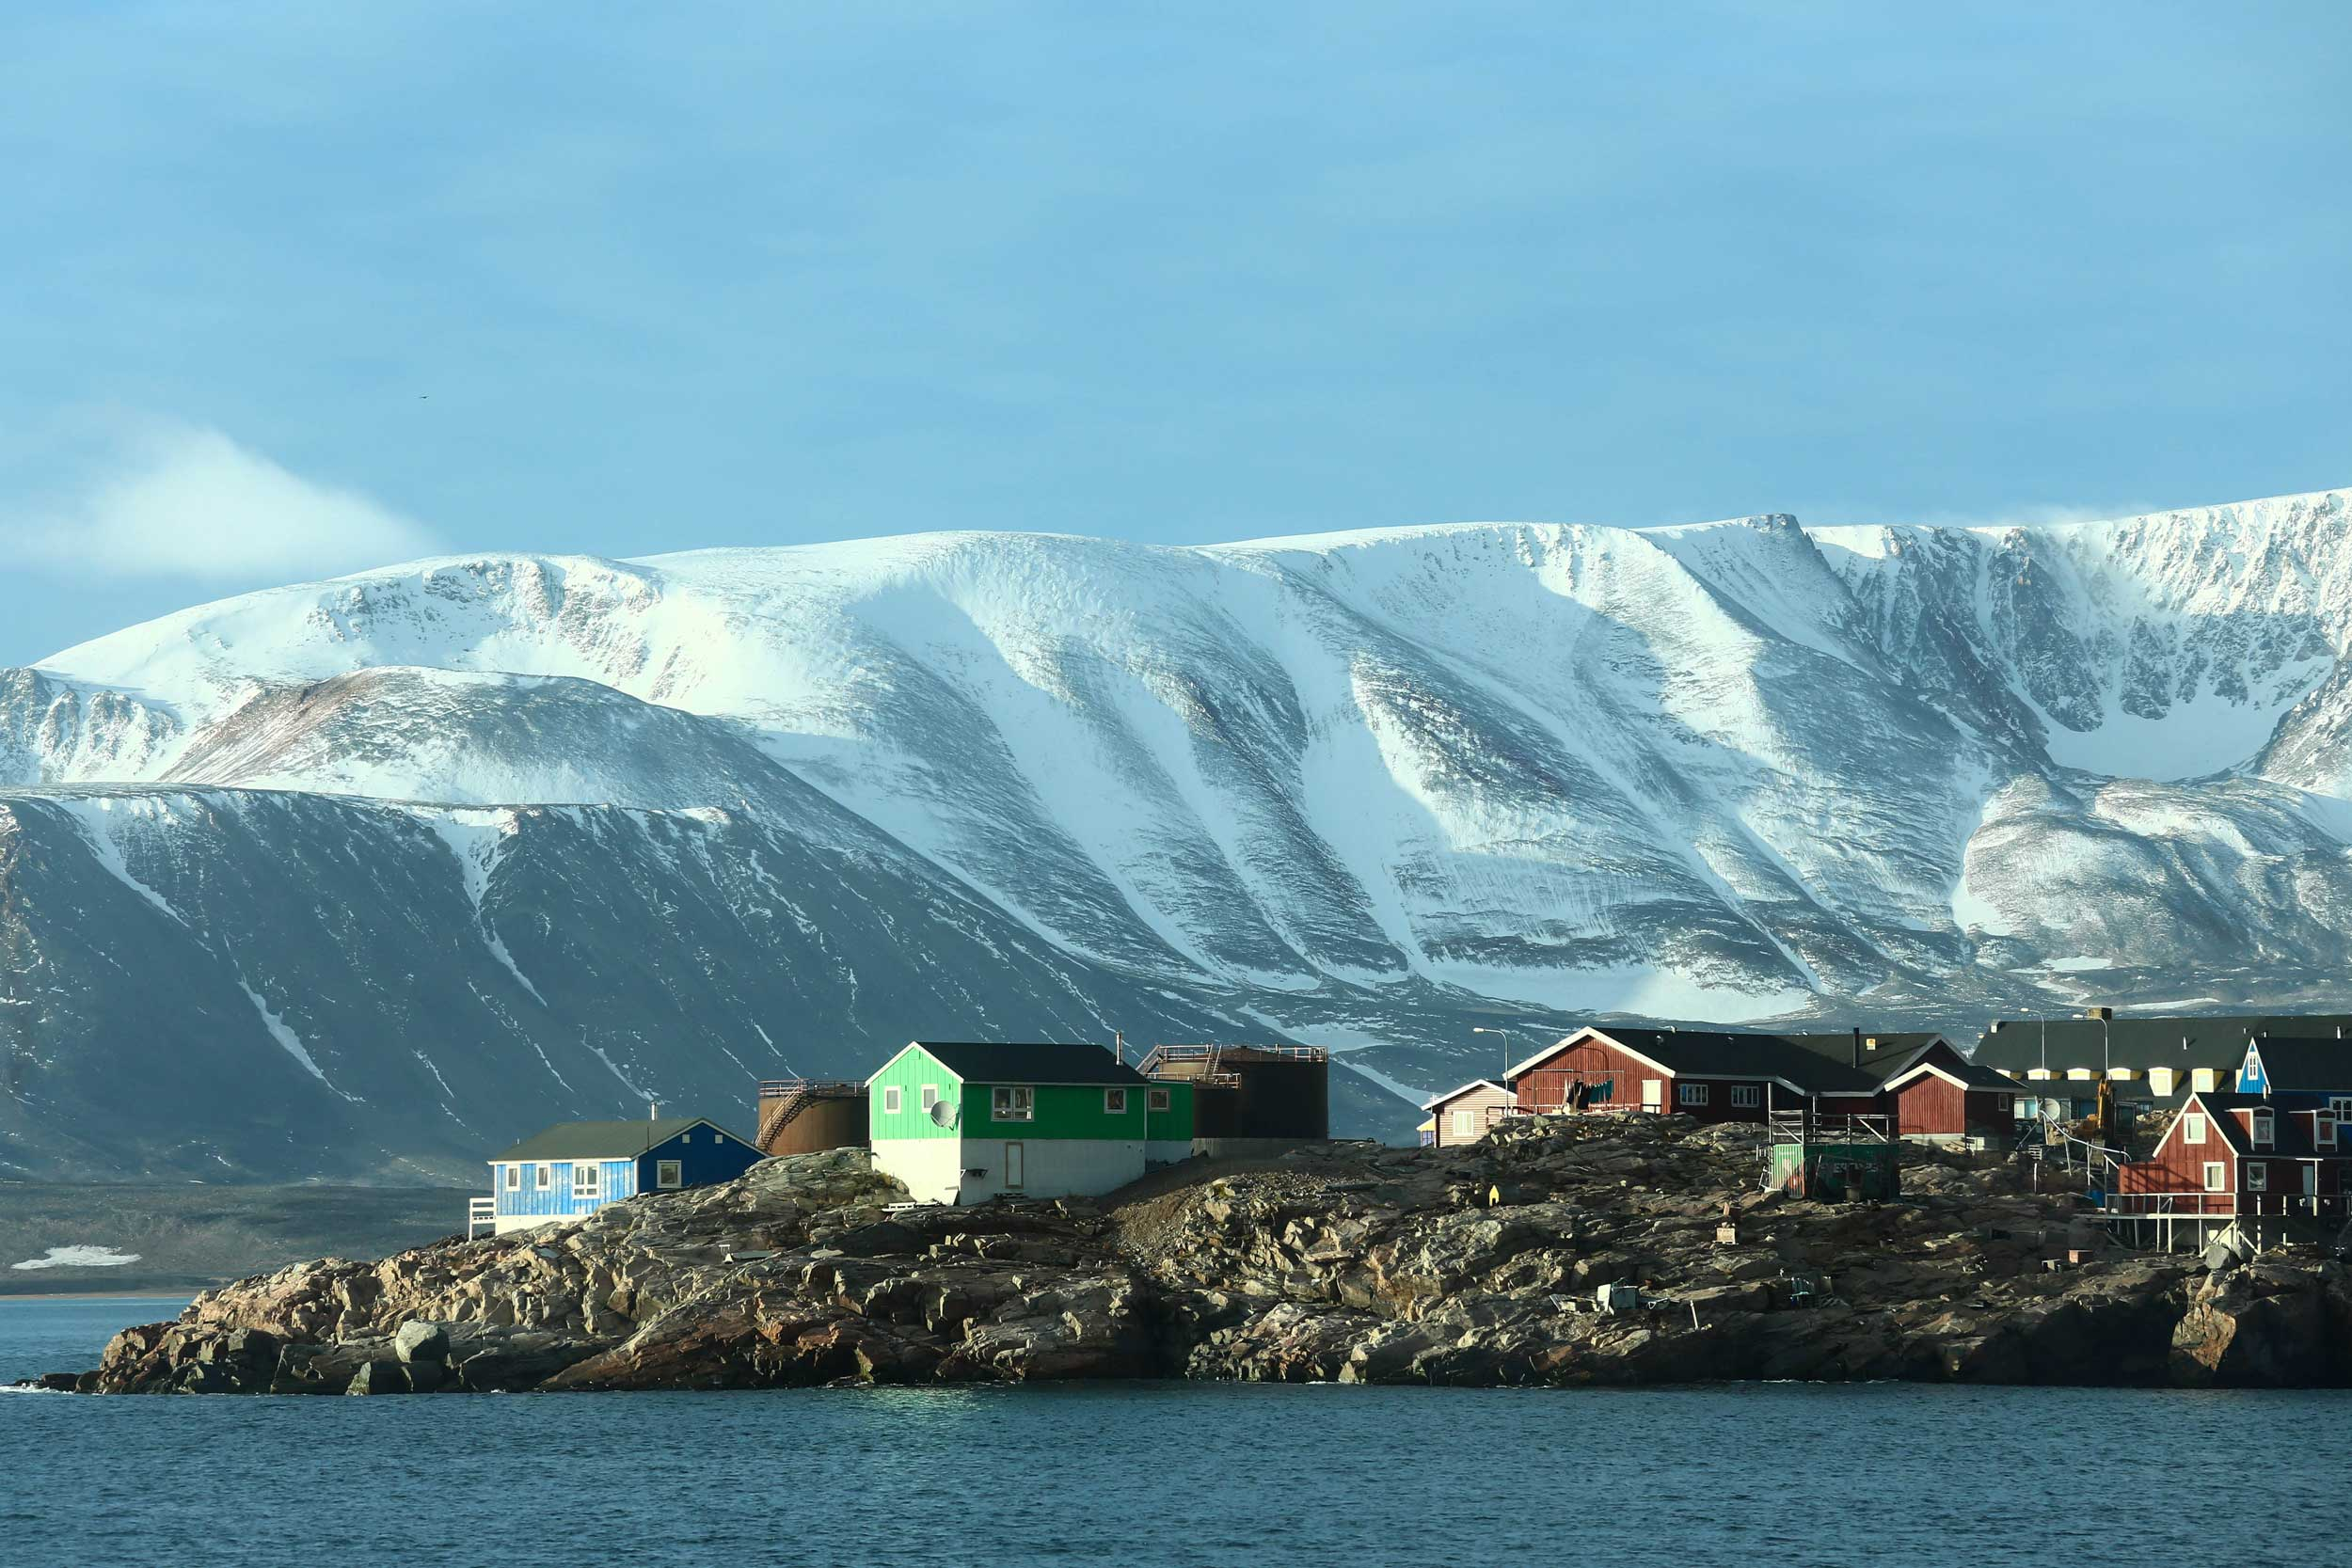 Buildings on a rocky outcrop by the sea with ice covered mountains in the background, Greenland